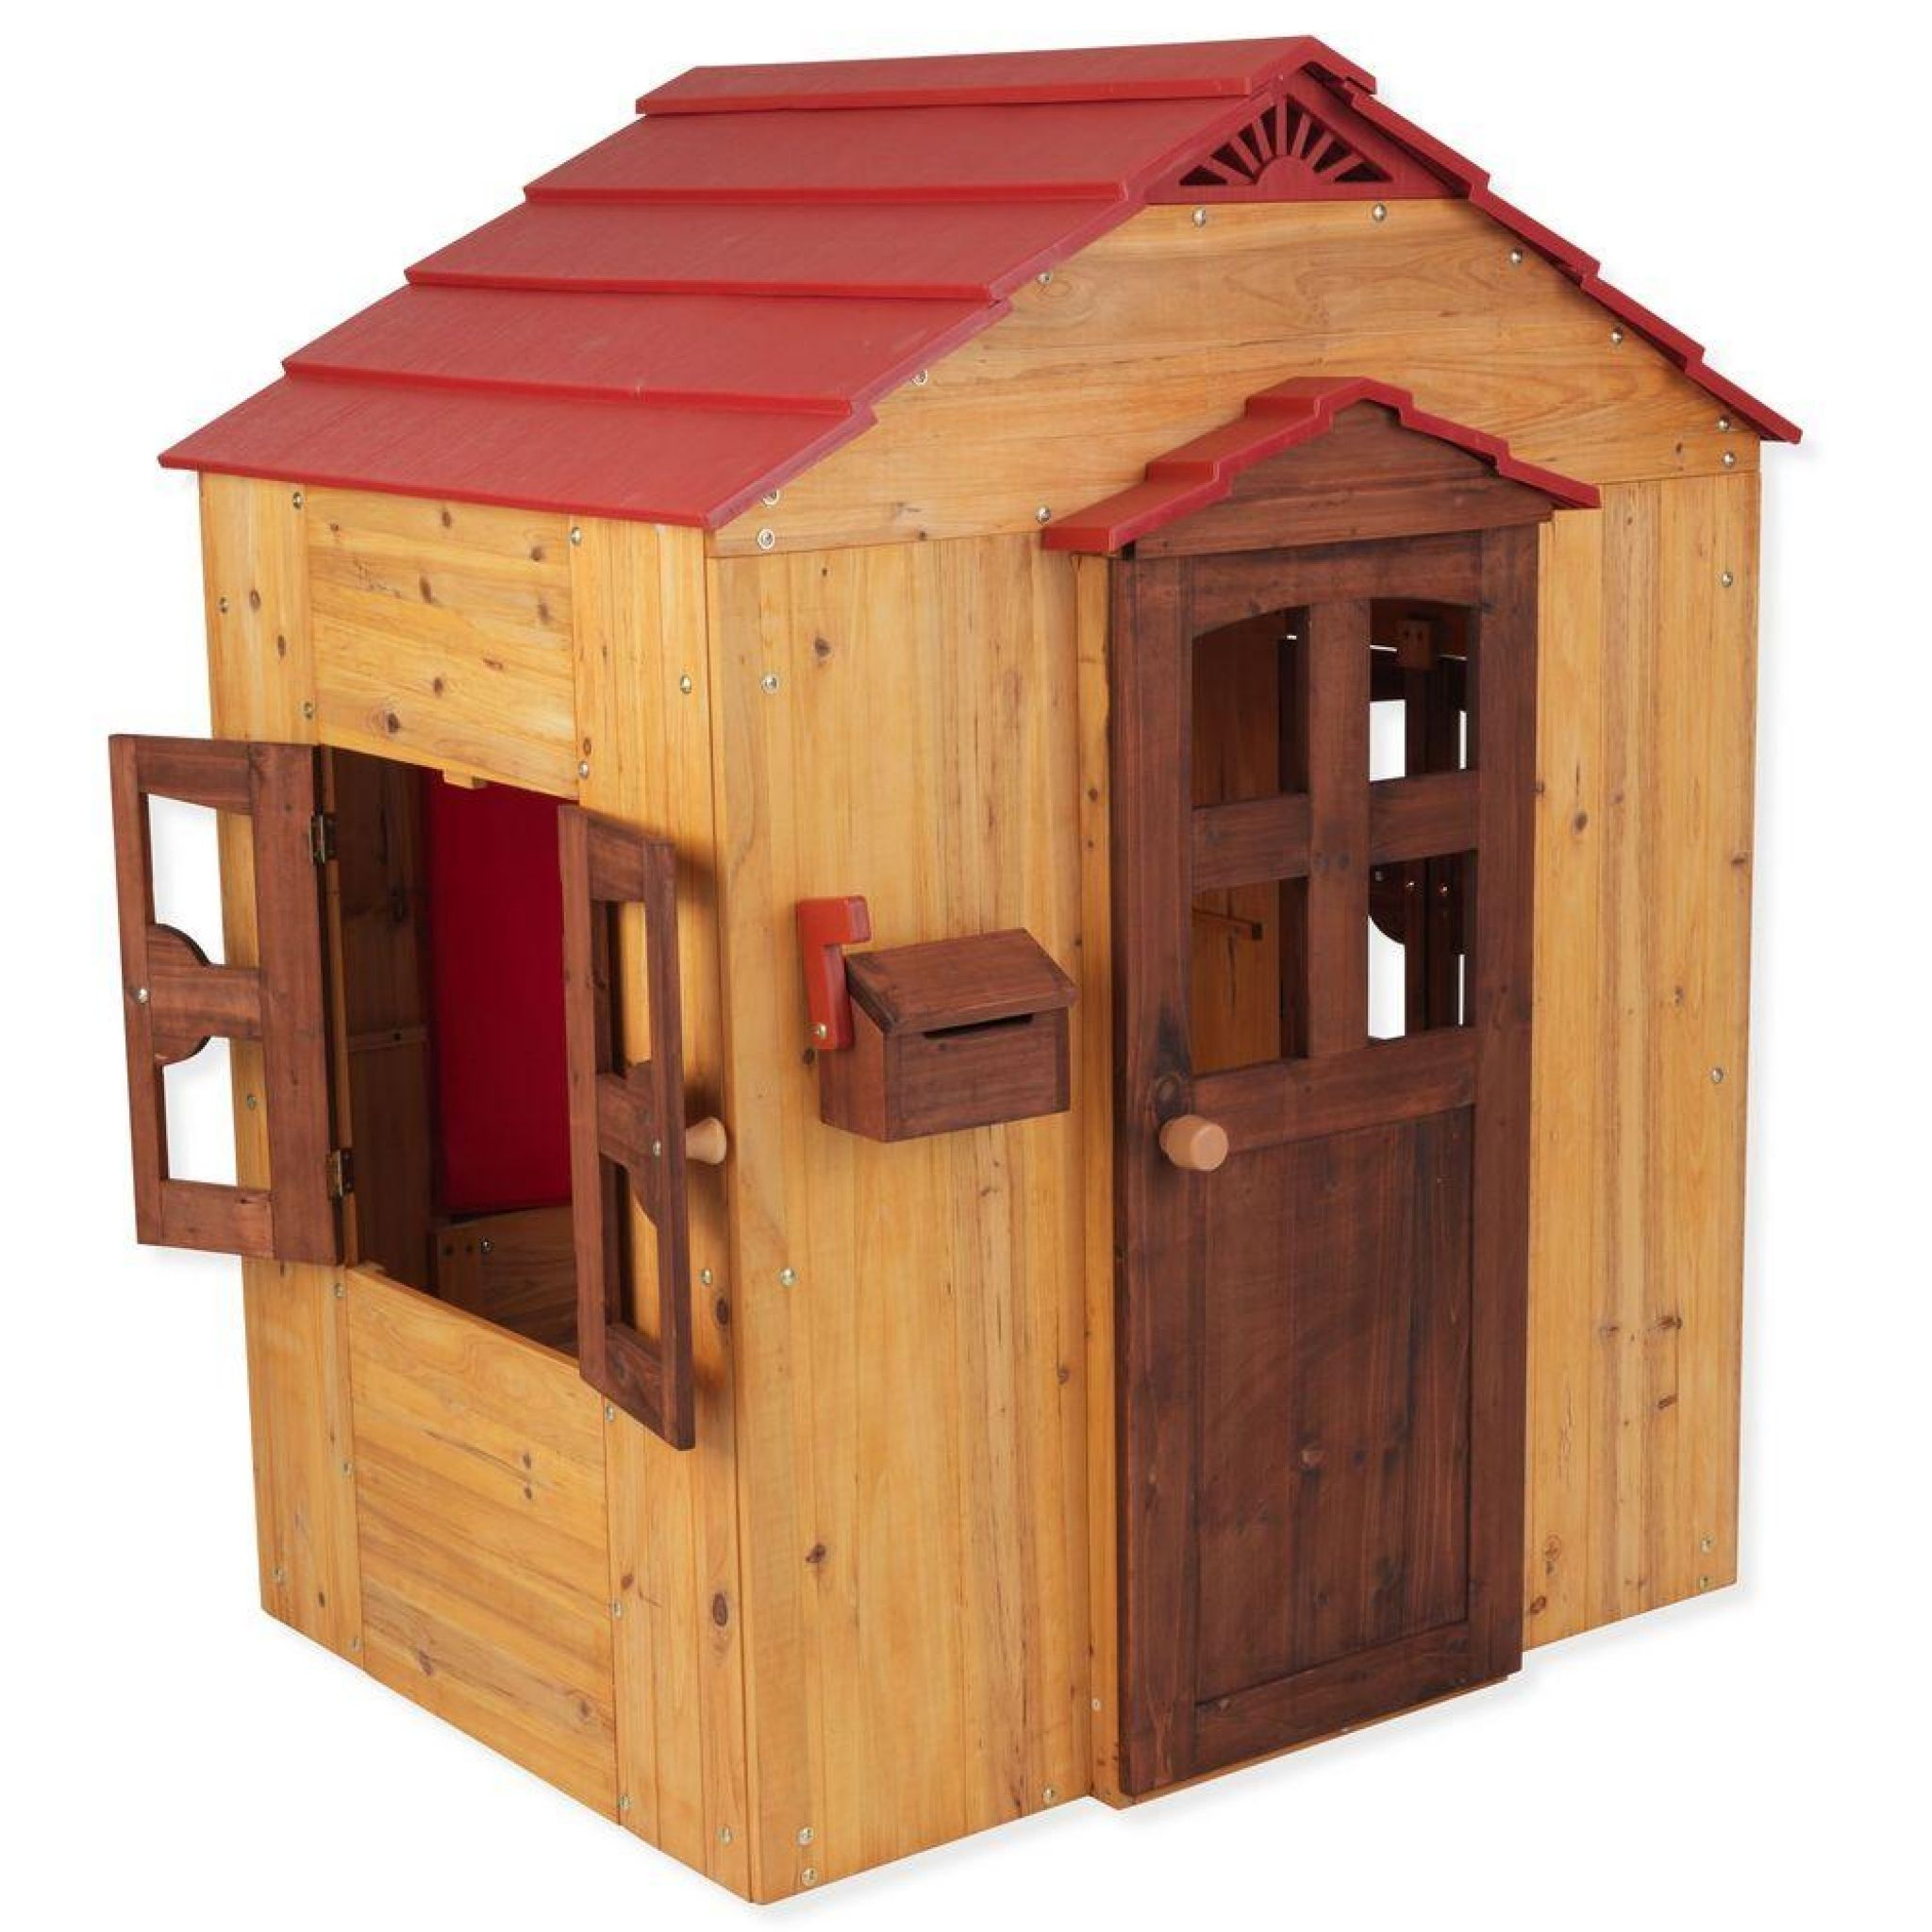 Outdoor Playhouse With Kitchen   Best Interior Paint Brand Check More At  Http://